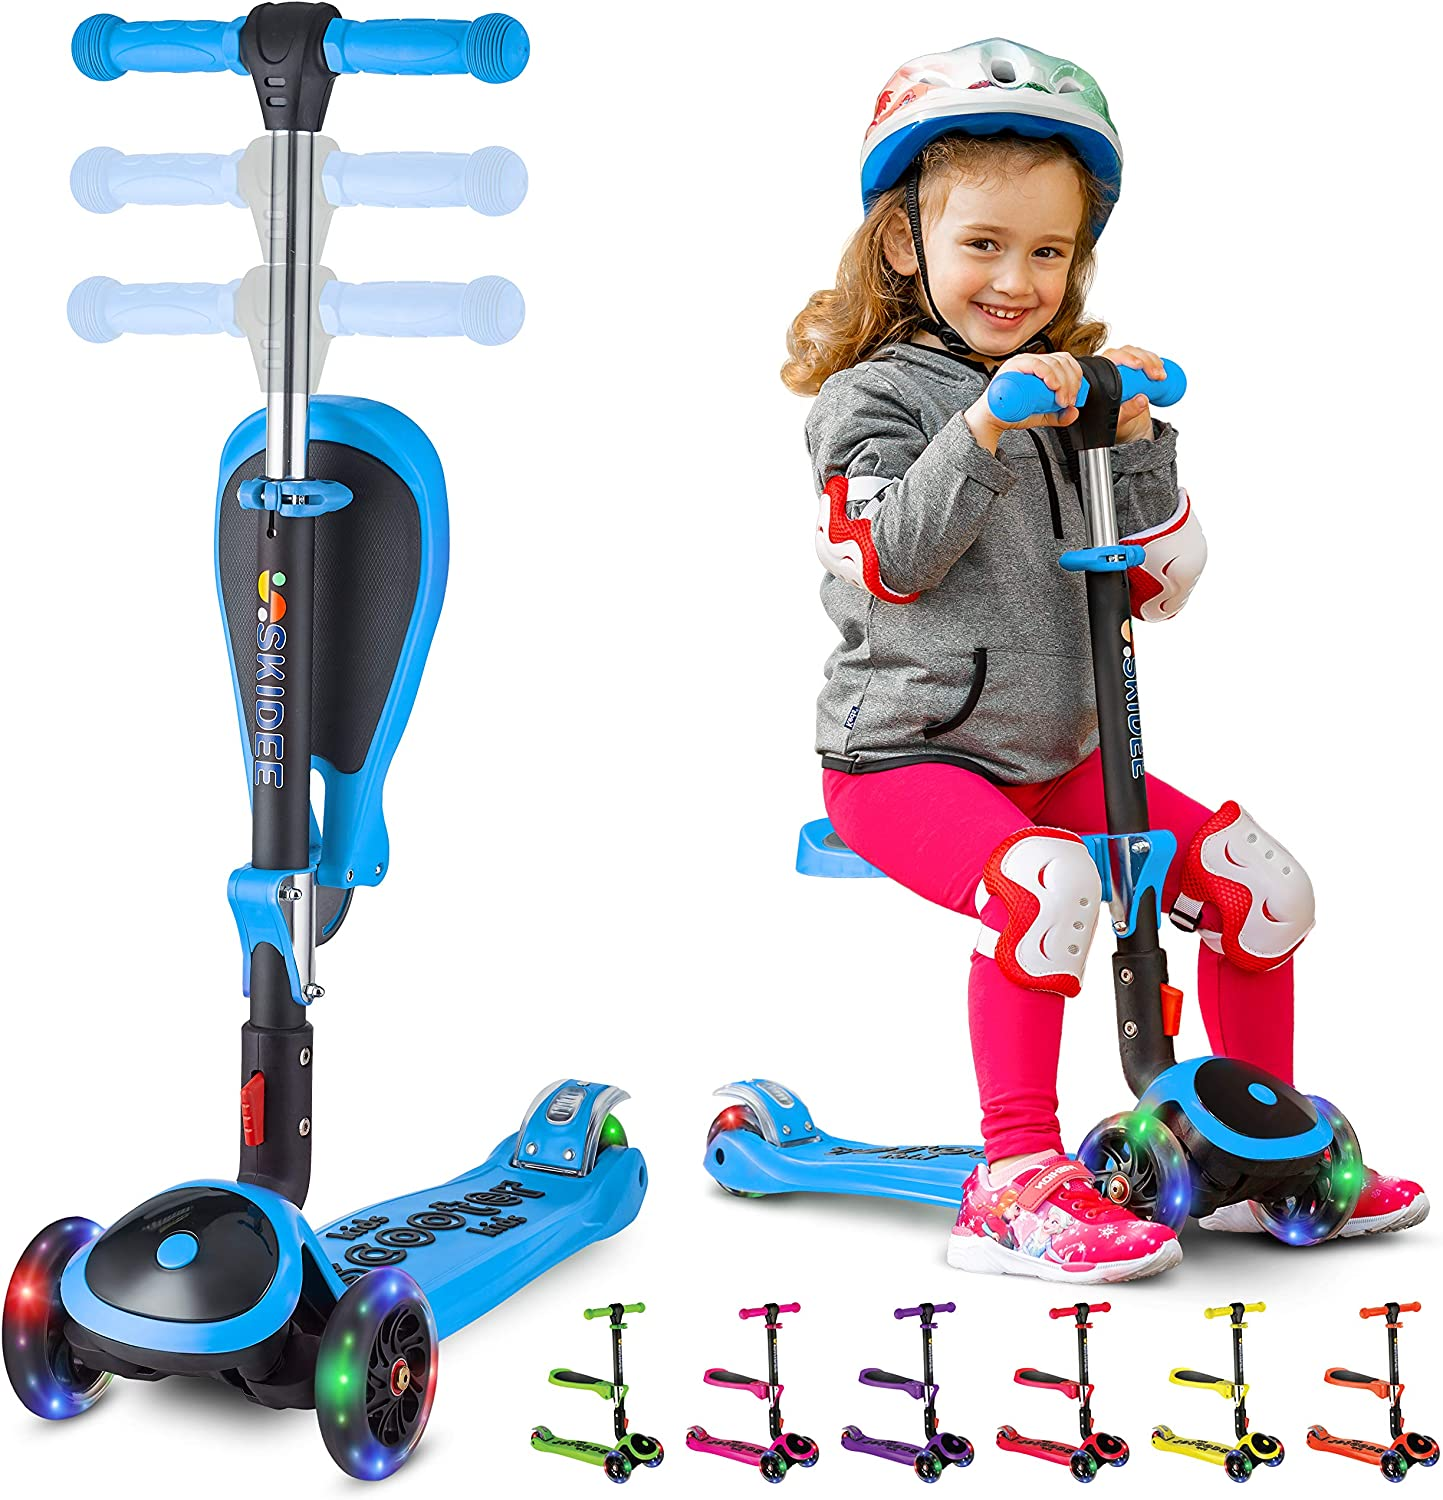 SKIDEE Kick Scooters for Kids 2-12 Years Old